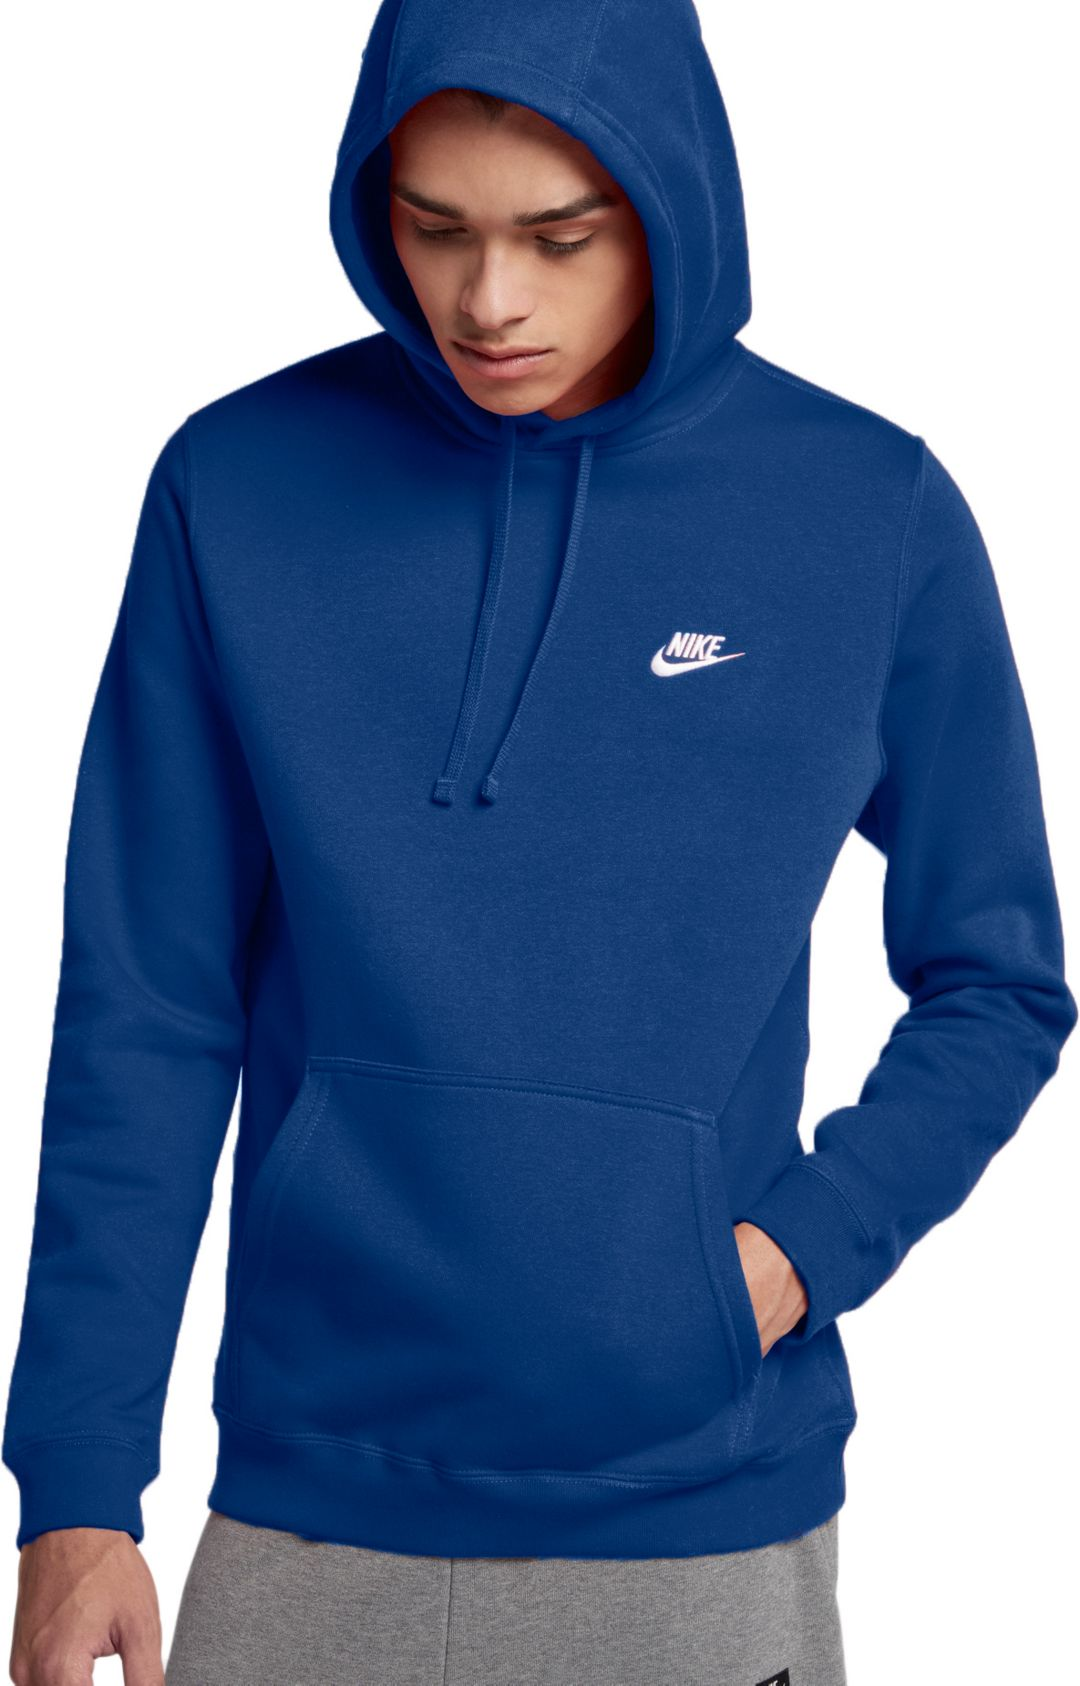 c1717c05b Nike Men's Club Fleece Pullover Hoodie | DICK'S Sporting Goods